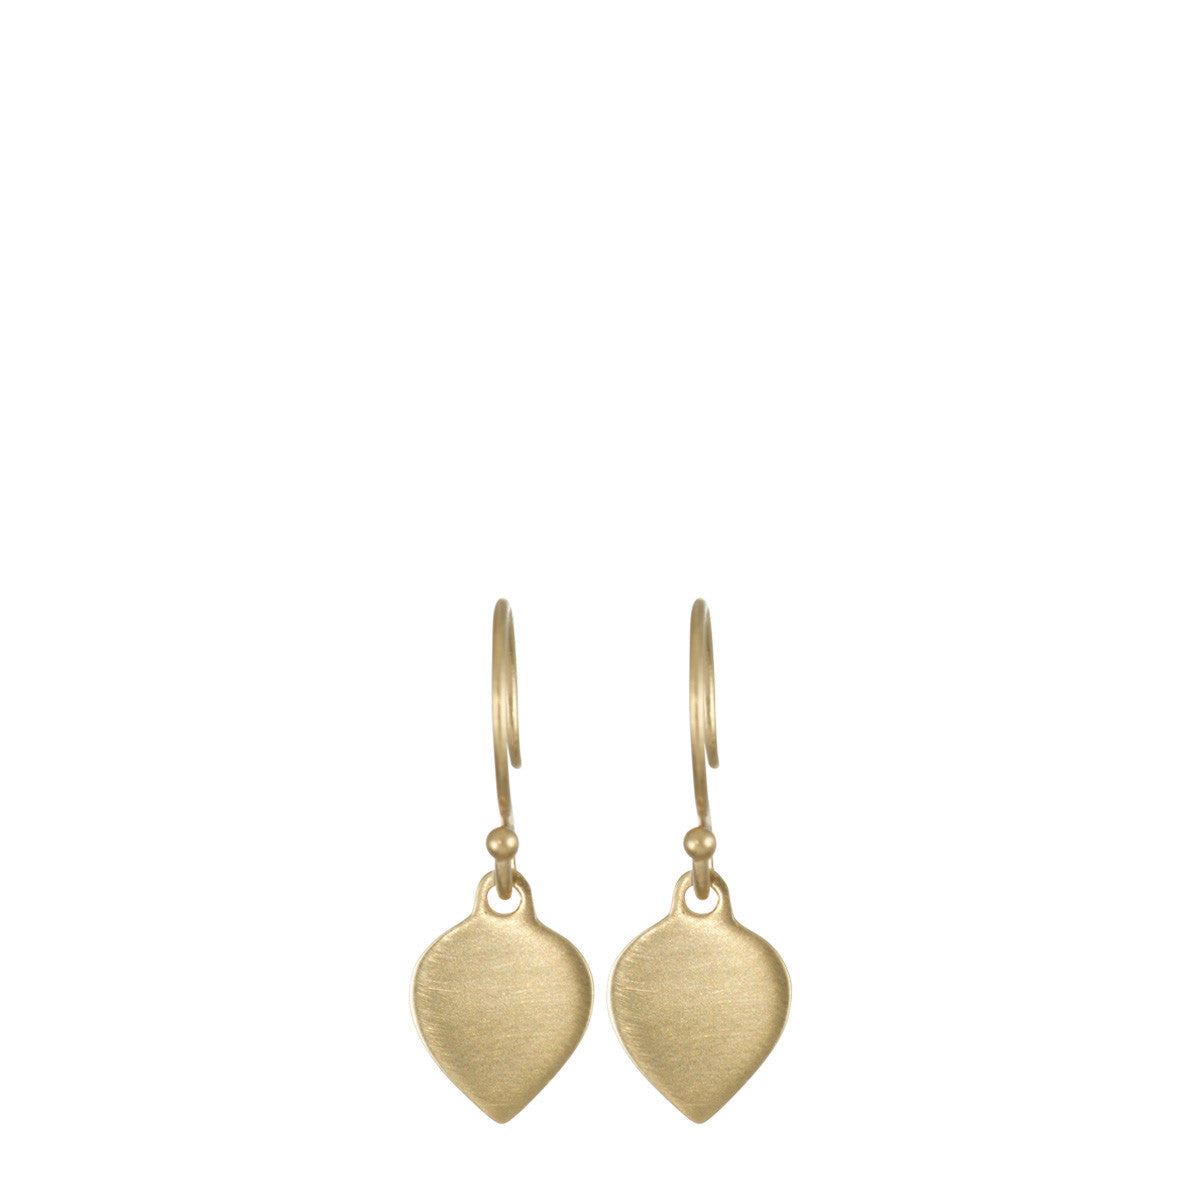 10K Gold Lotus Earrings